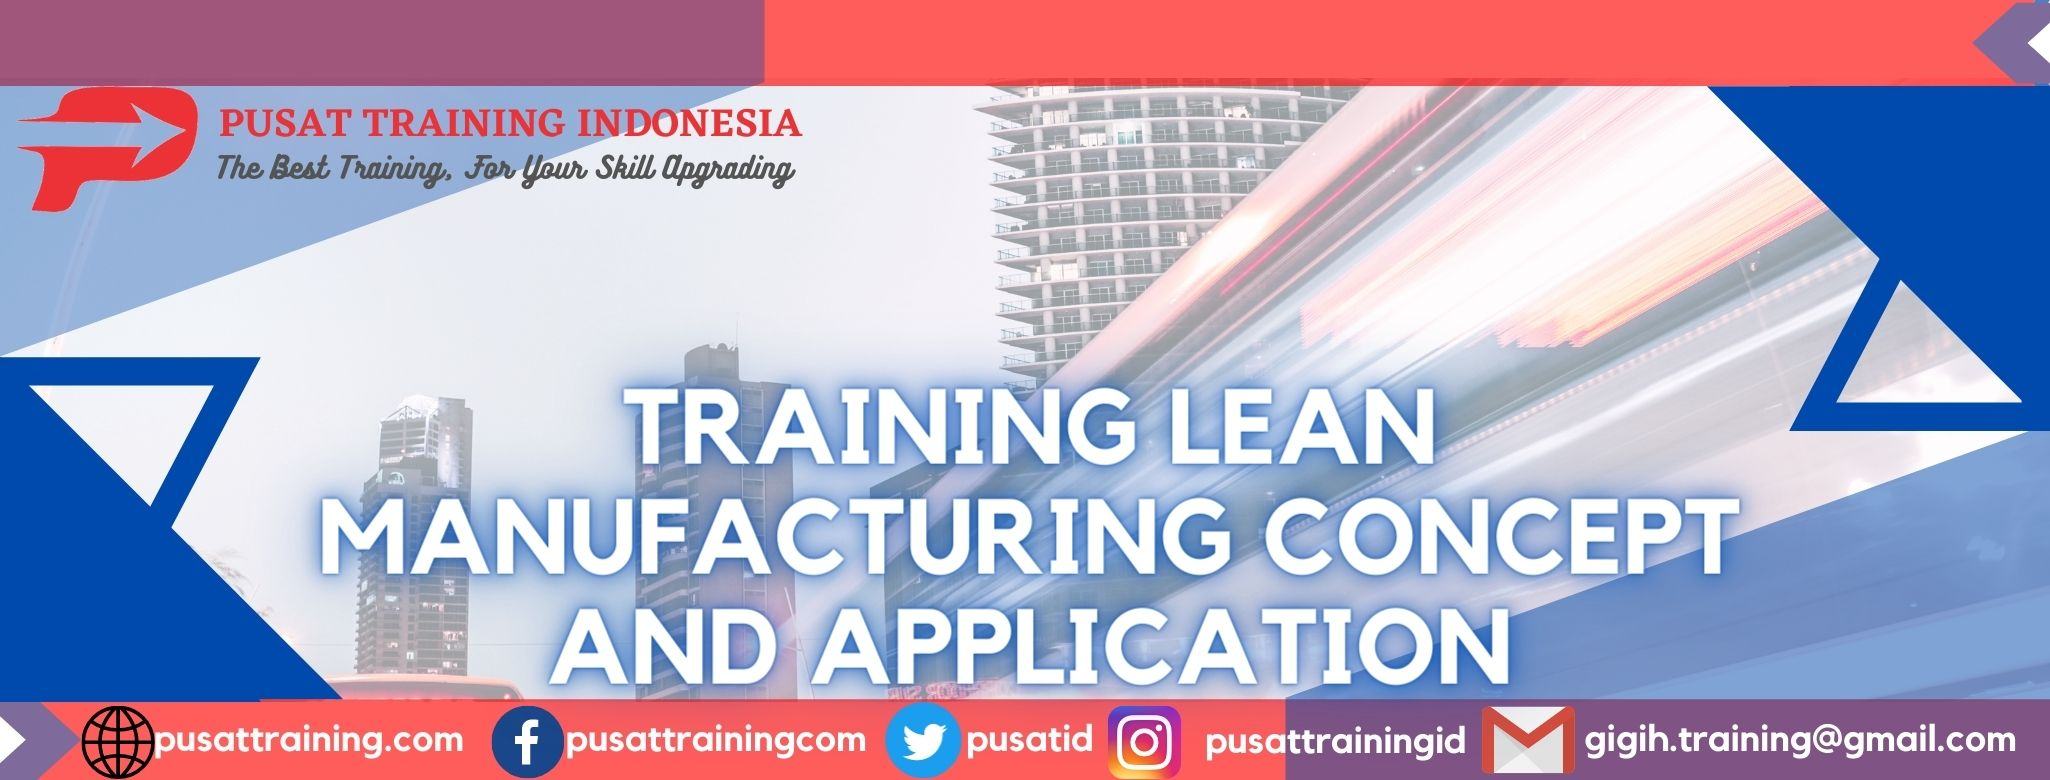 TRAINING-LEAN-MANUFACTURING-CONCEPT-AND-APPLICATION